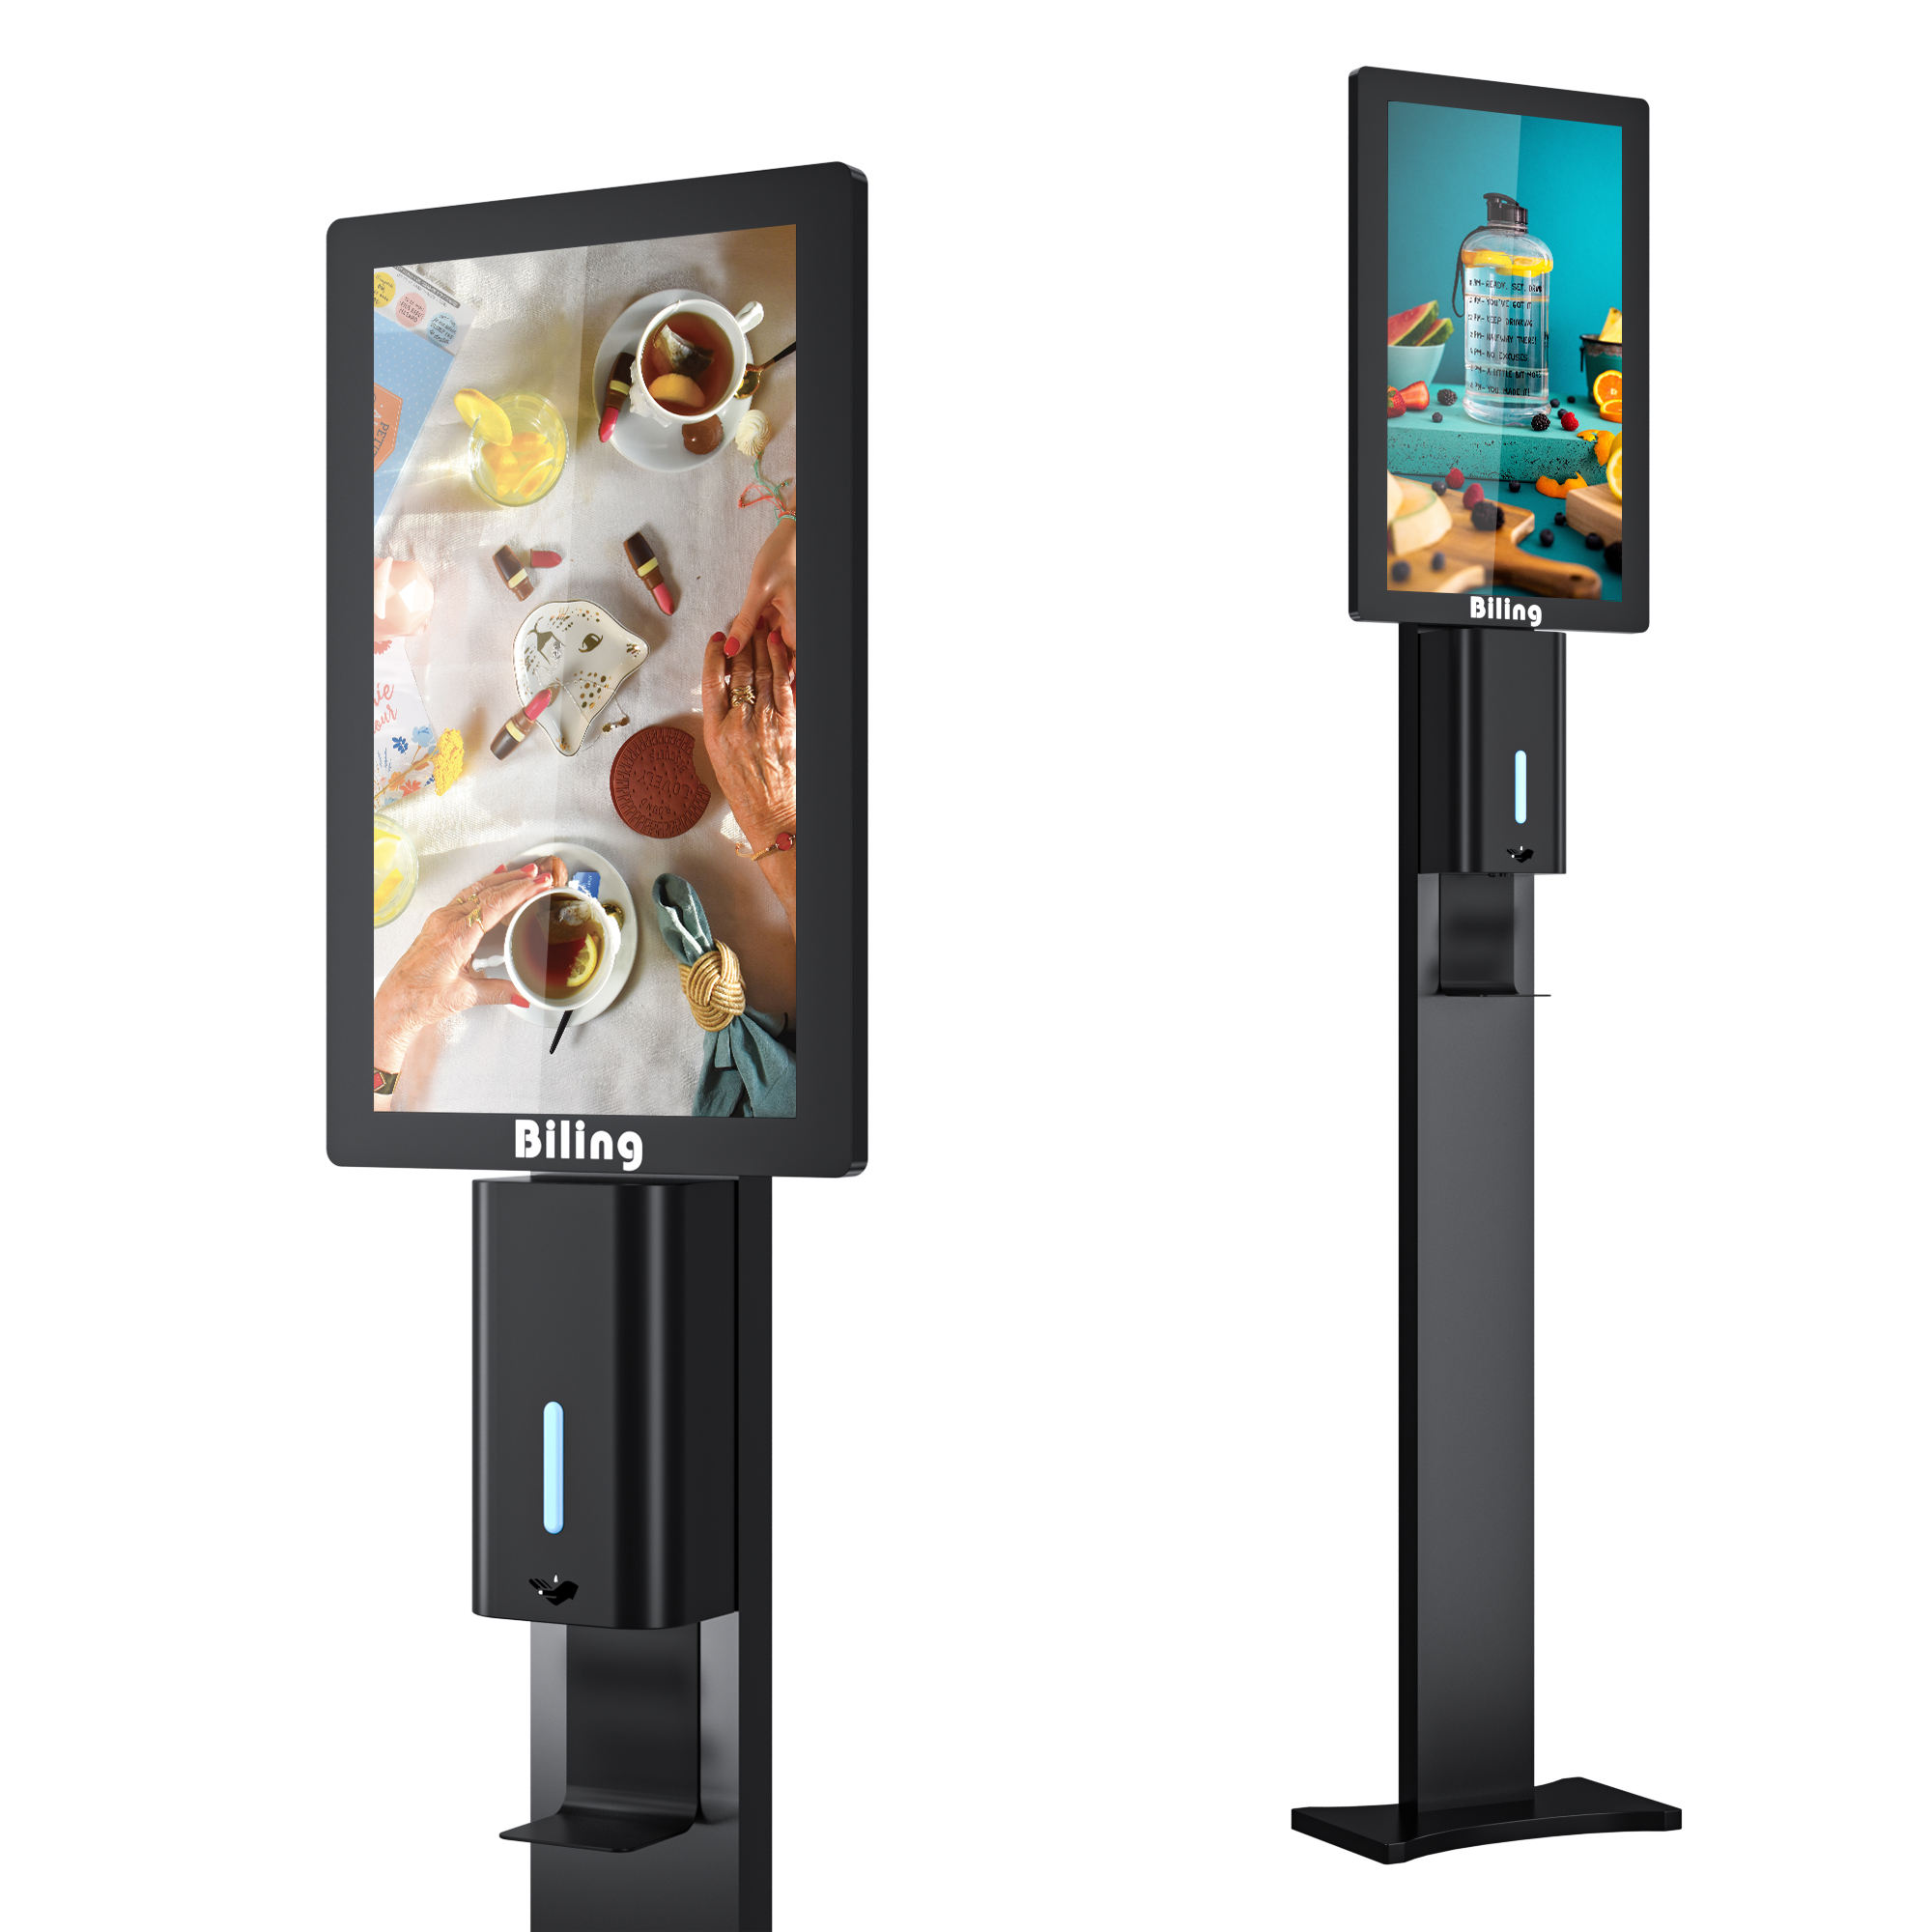 NEW Function Non-Touch ADs digital signage display 21.5inch with foaming soap hand sanitizer dispenser